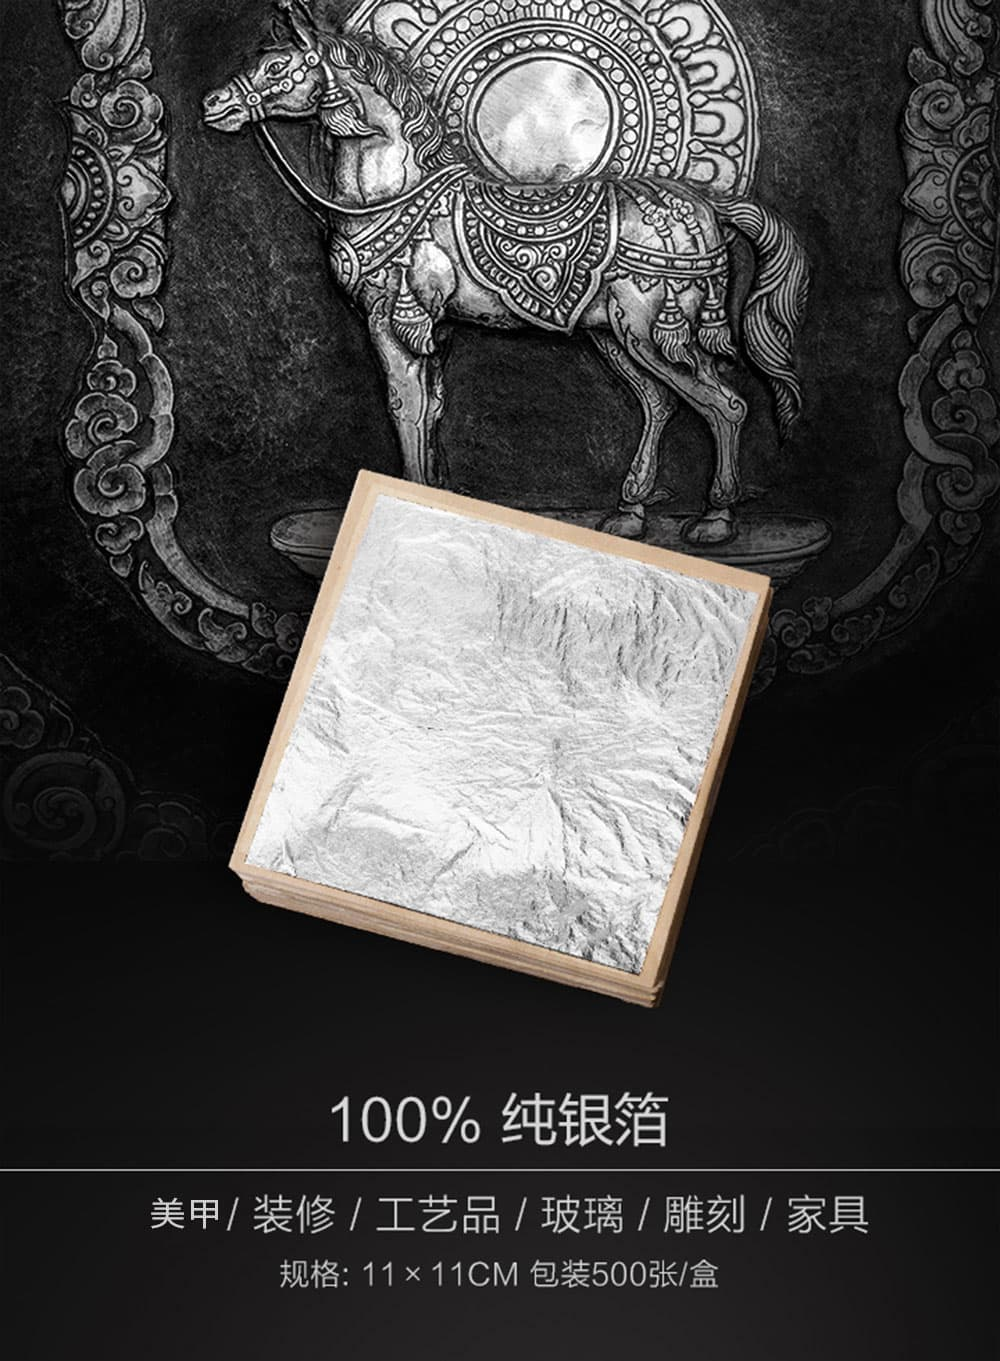 100% pure silver leaf